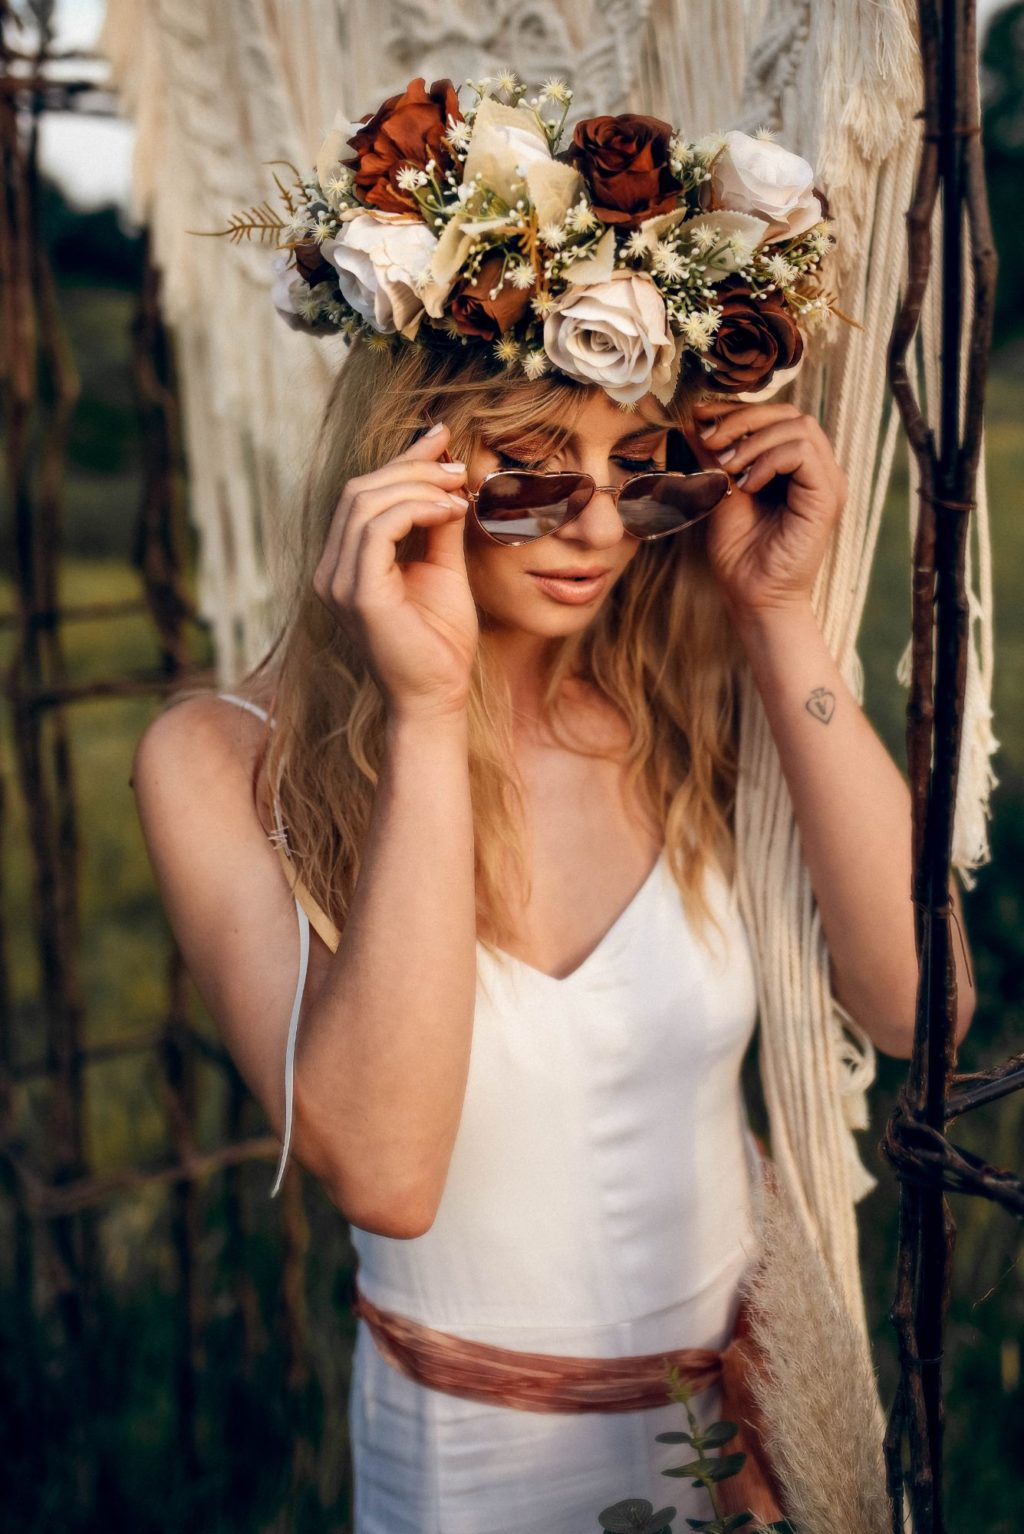 From Sunrise To Sunset; Five Alternative Bridal Looks For Your Wedding Day